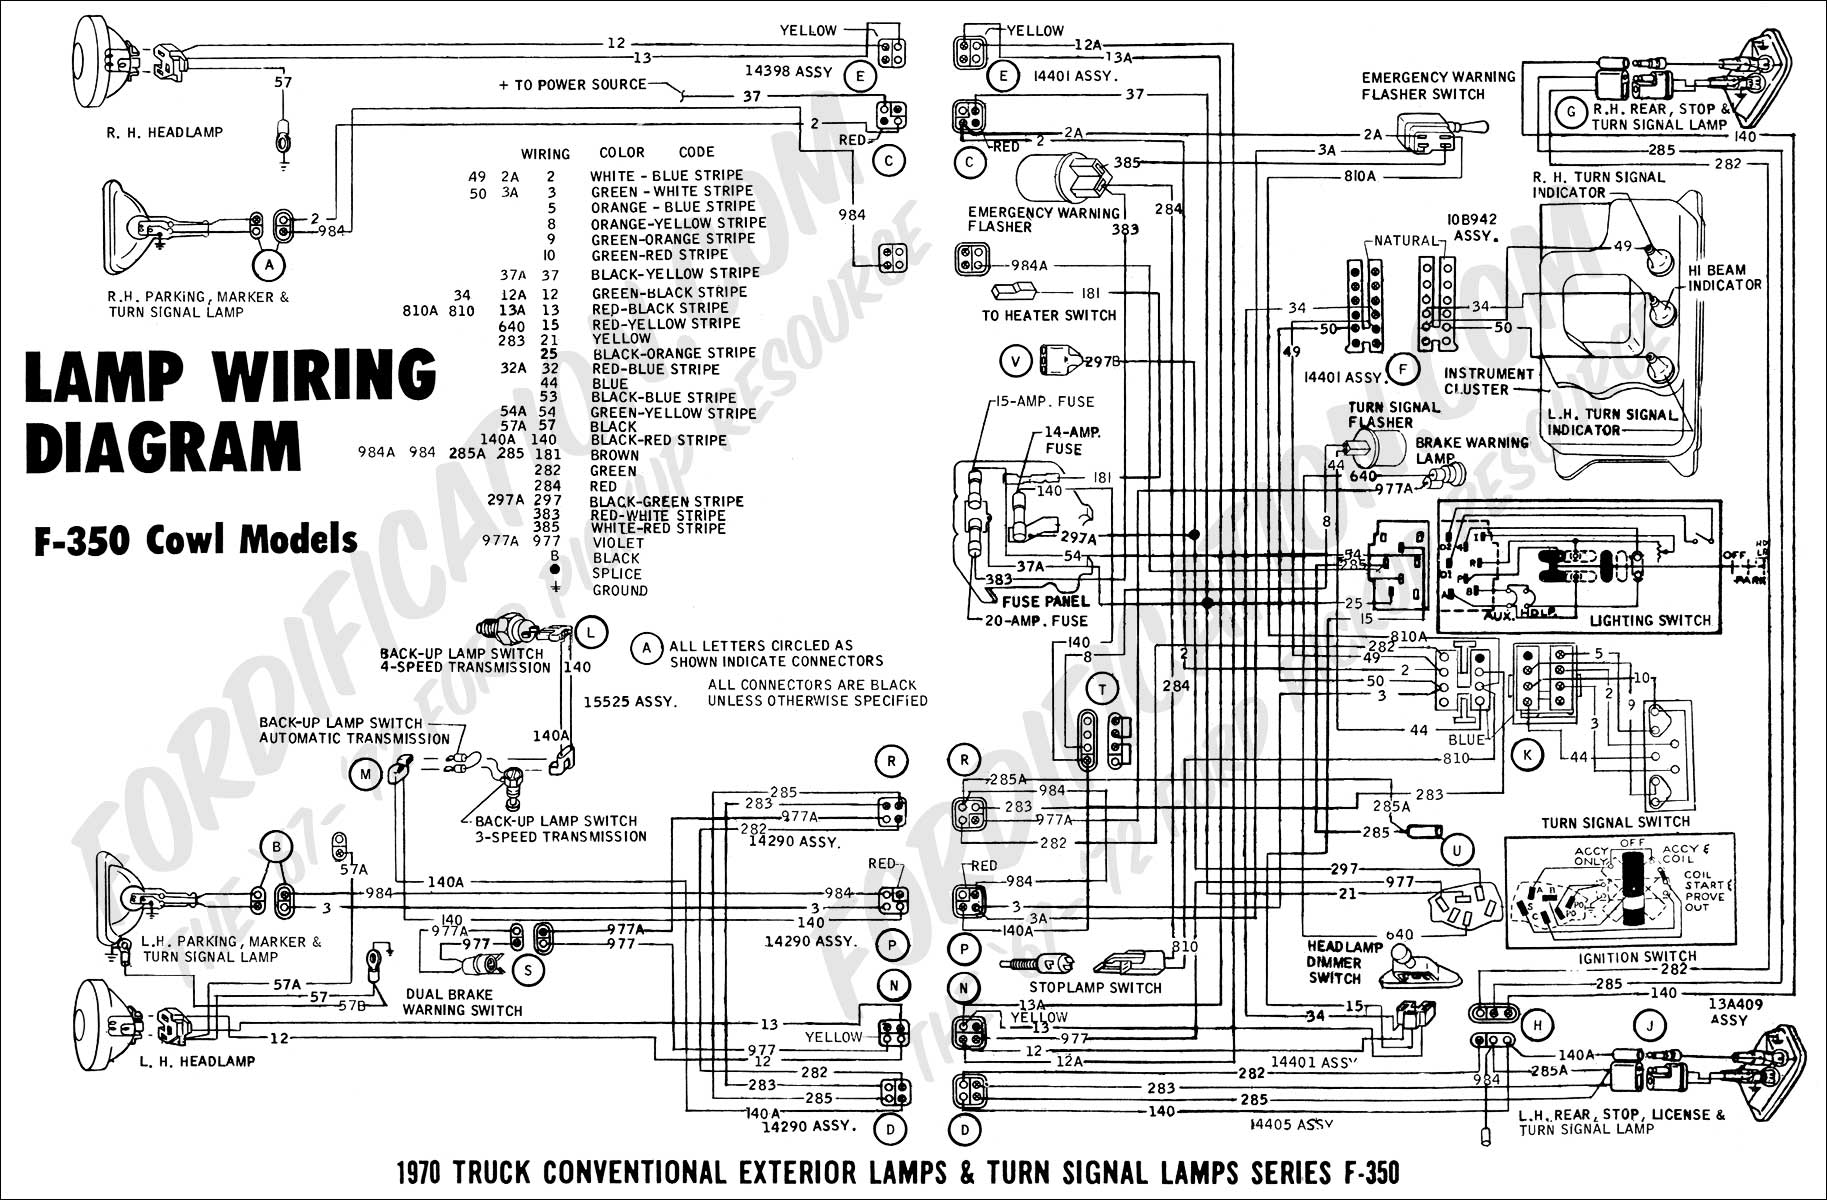 wiring diagrams 2003 ford super duty and excursion wiring diagram2003 ford f350 wiring schematics wiring diagrams wiring diagrams 2003 ford super duty and excursion